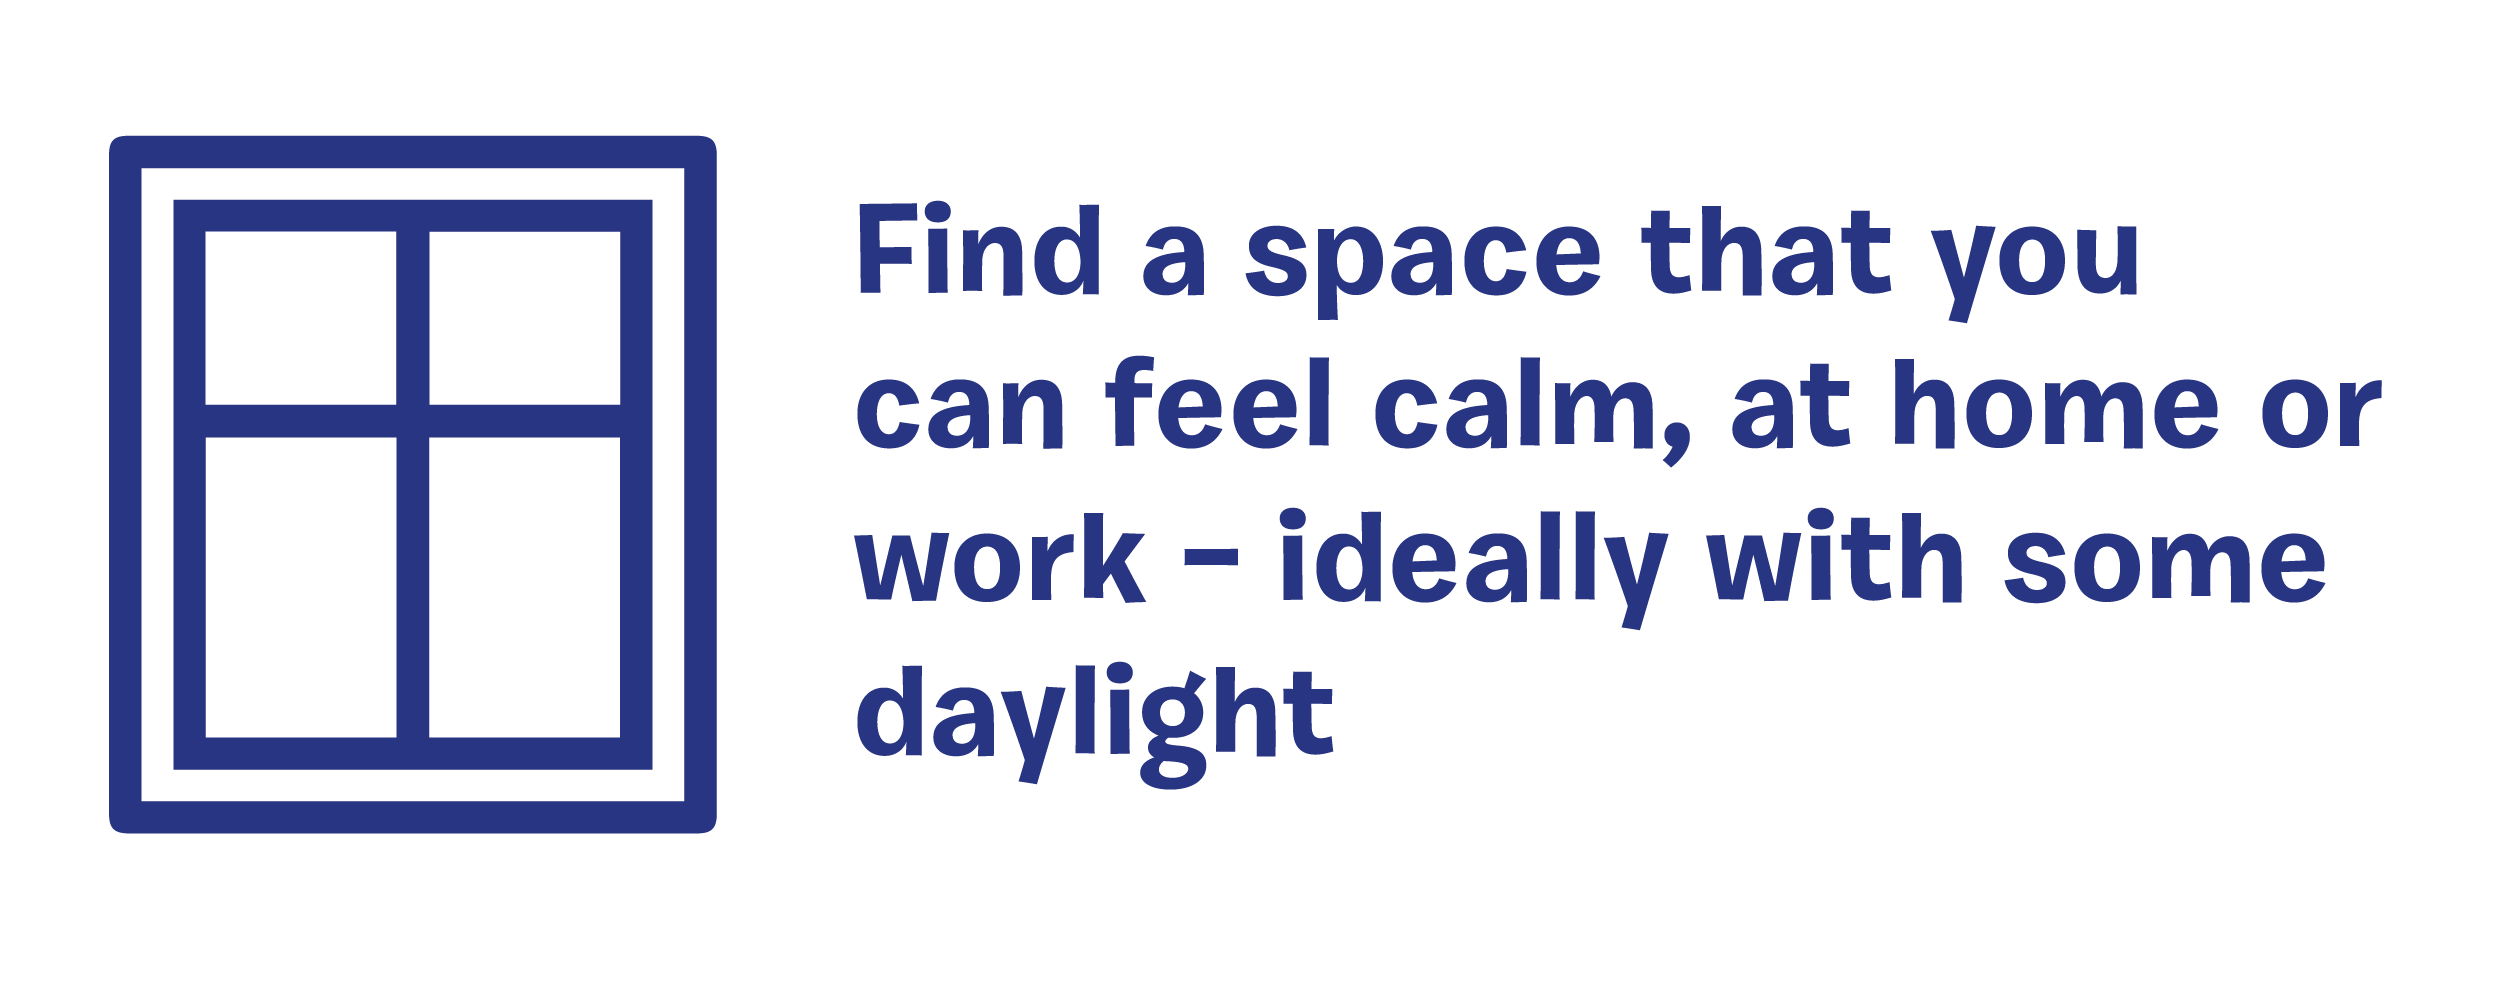 Find a space that you can feel calm, at home or work - ideally with some daylight